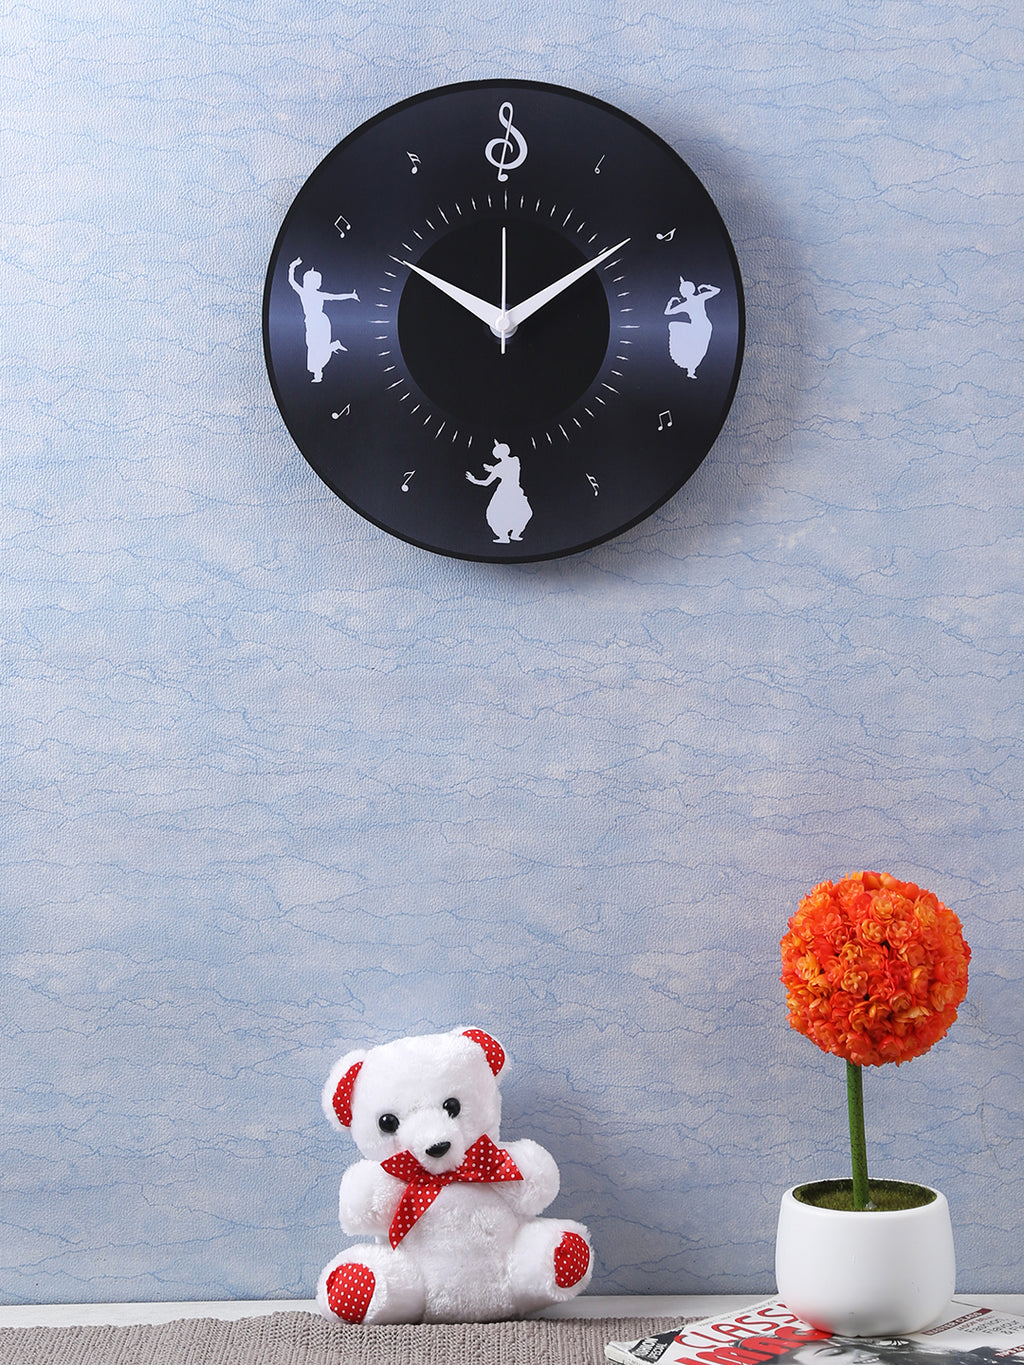 Handcrafted Vinyl Disc Wall Clock